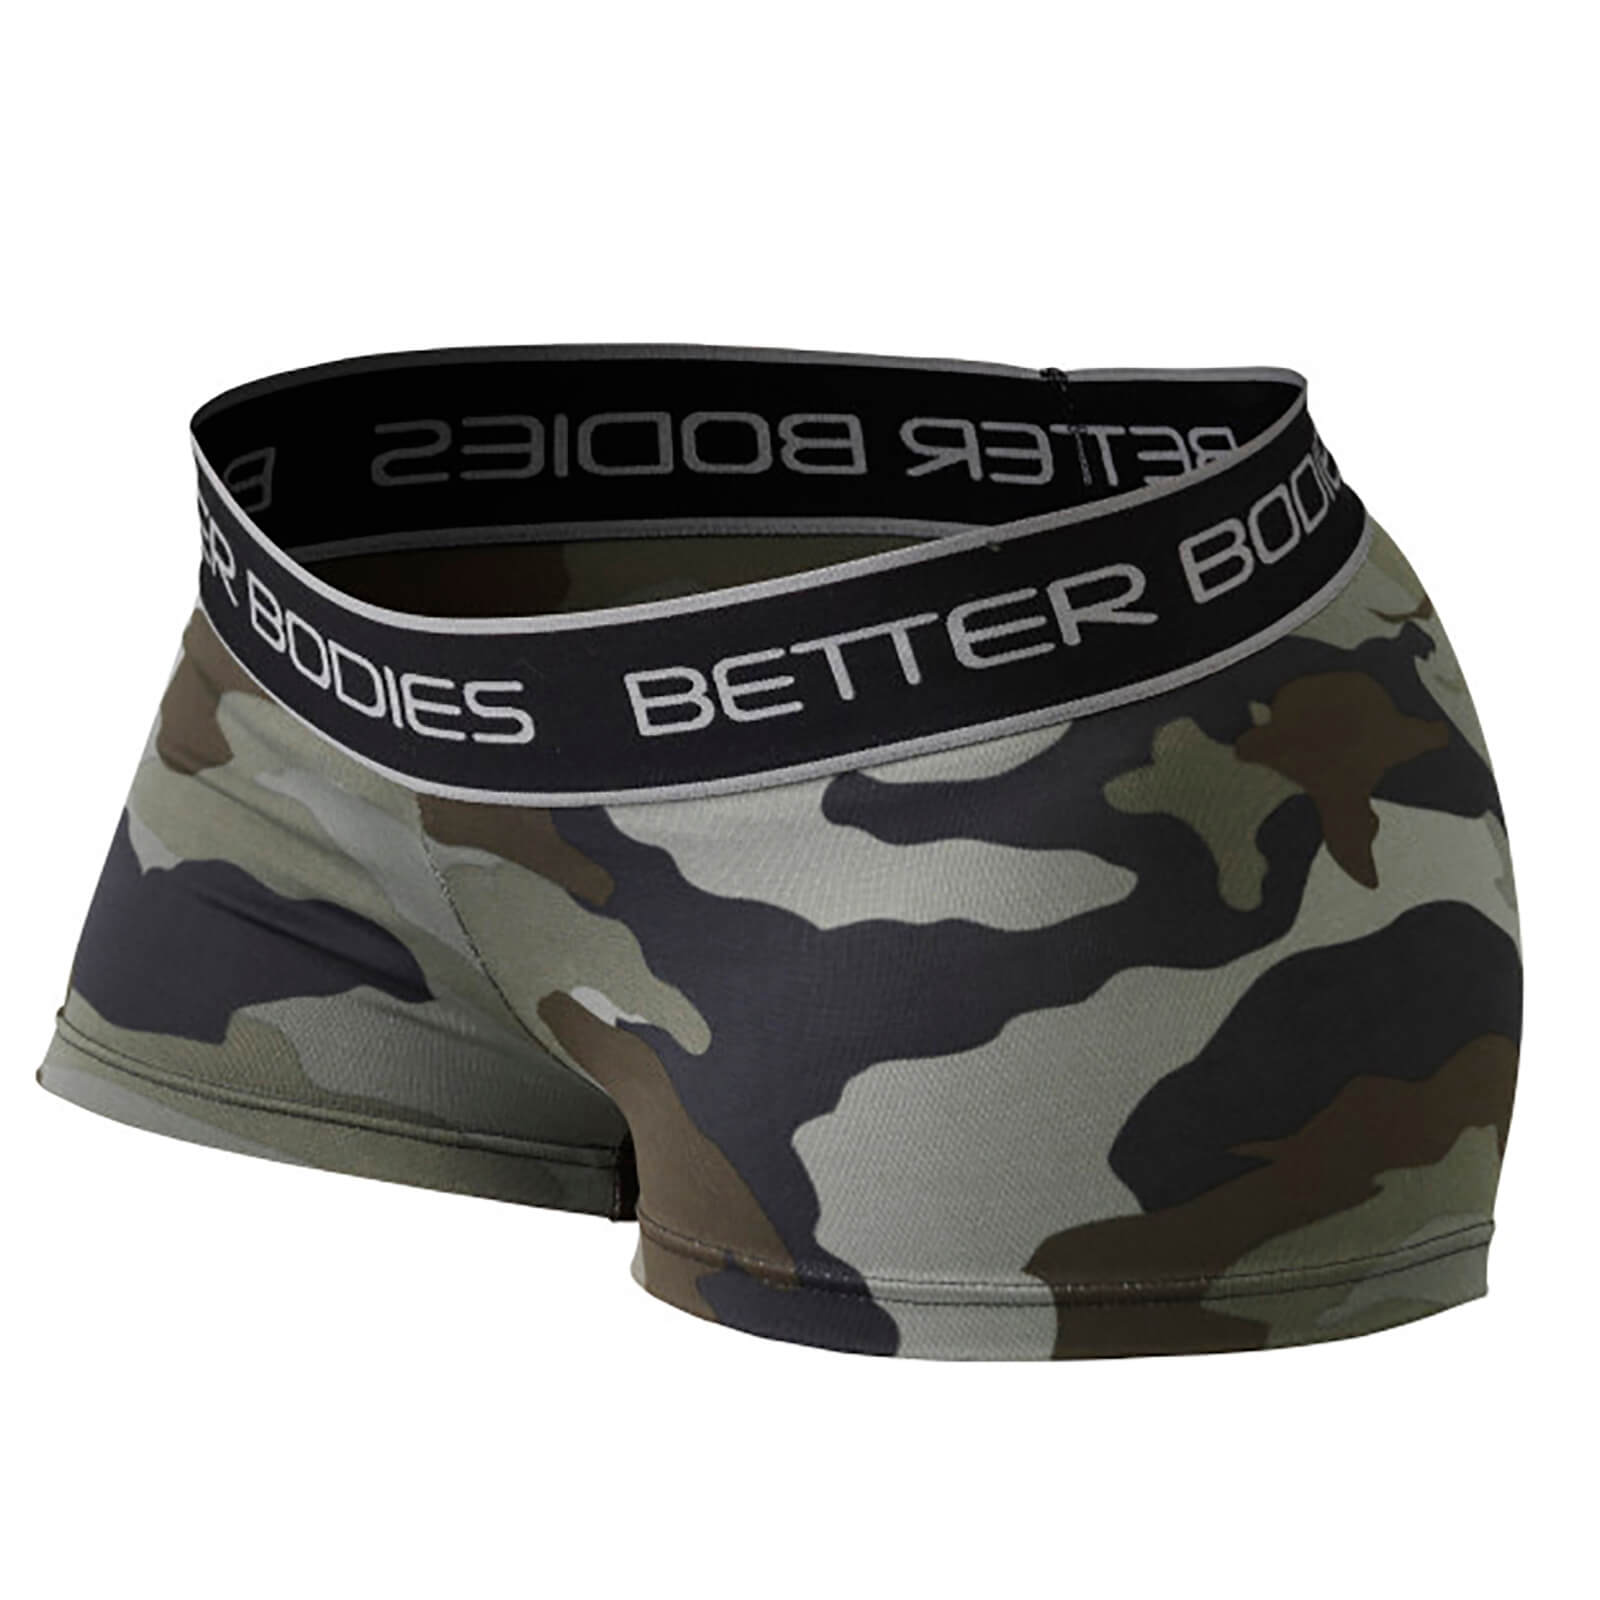 Better Bodies Fitness Hot Pants - Green Camoprint - S